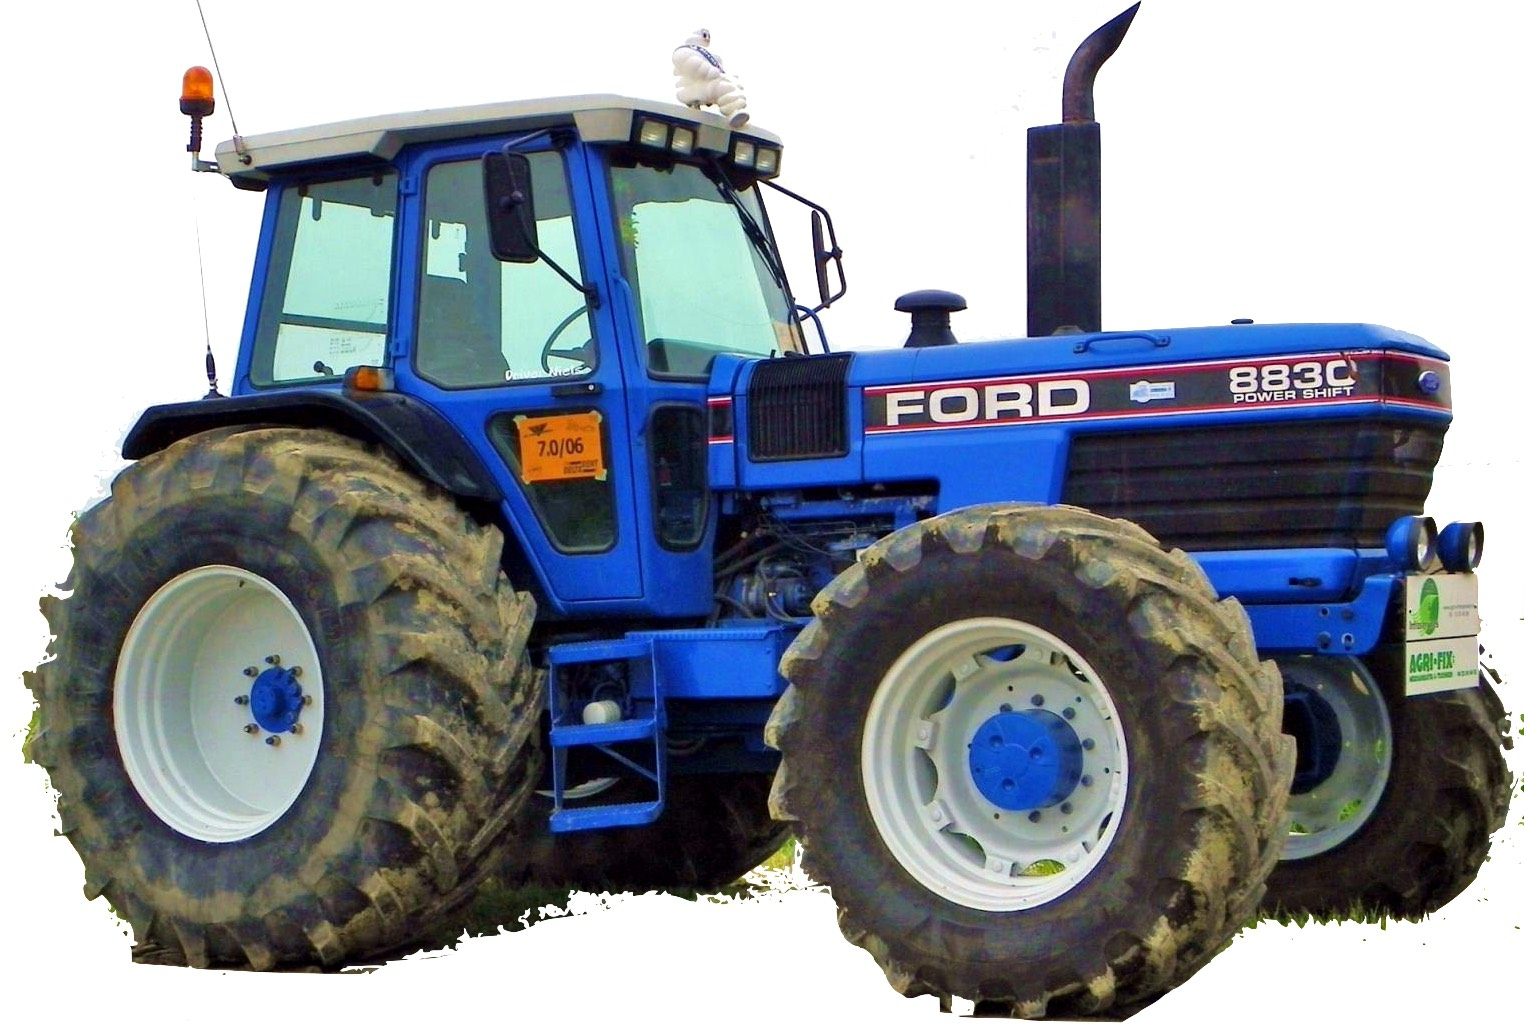 new holland ford tractors tw5, tw15, tw25, tw35, 8530, 8630, 8730, 8830 service \u0026 shop manual Ford 5600 Wiring Diagram